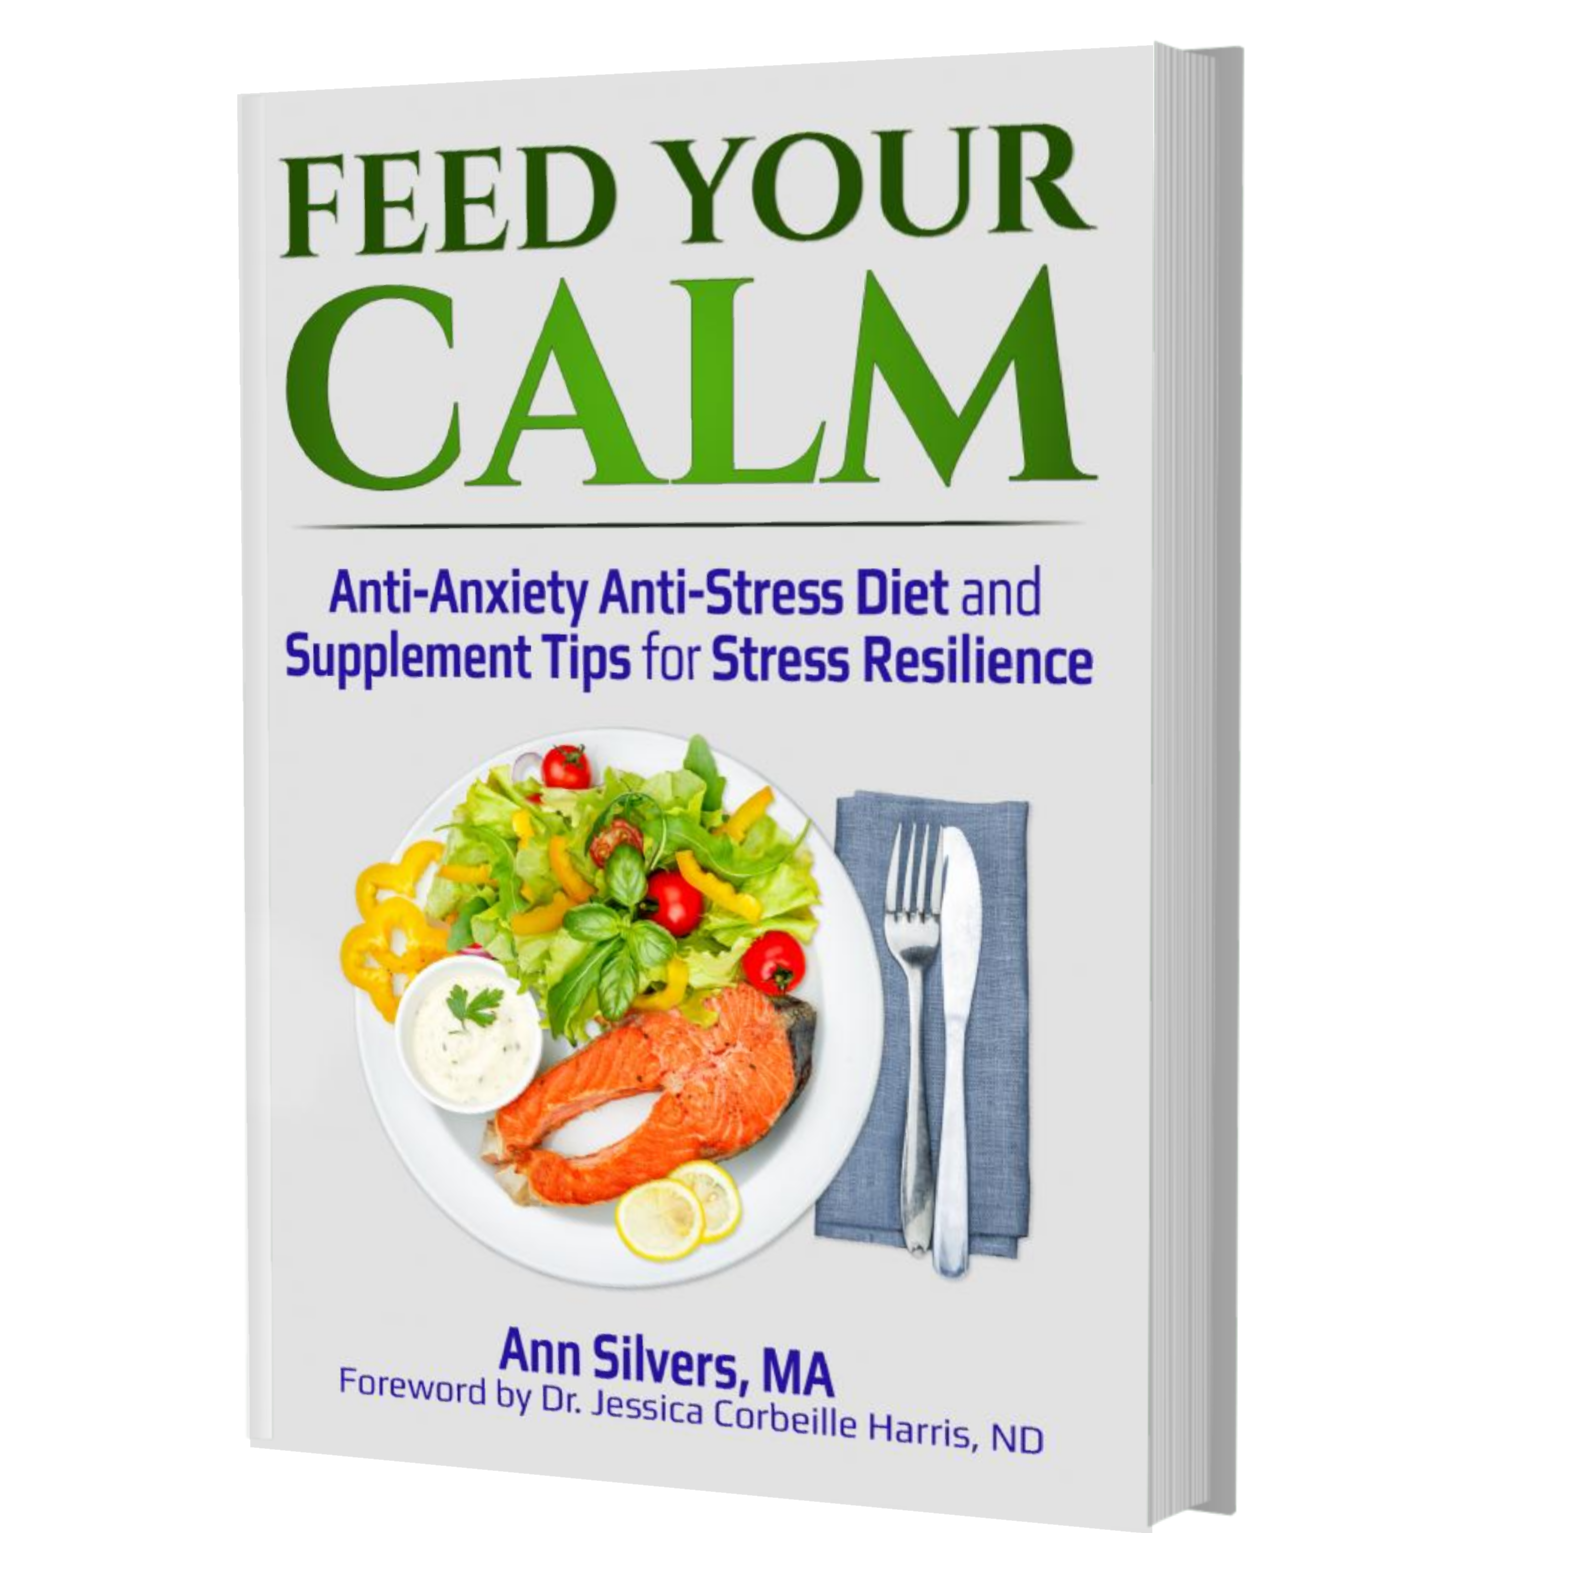 Feed Your Calm: Anti-Anxiety Anti-Stress Diet and Supplement Tips for Stress Resilience Book